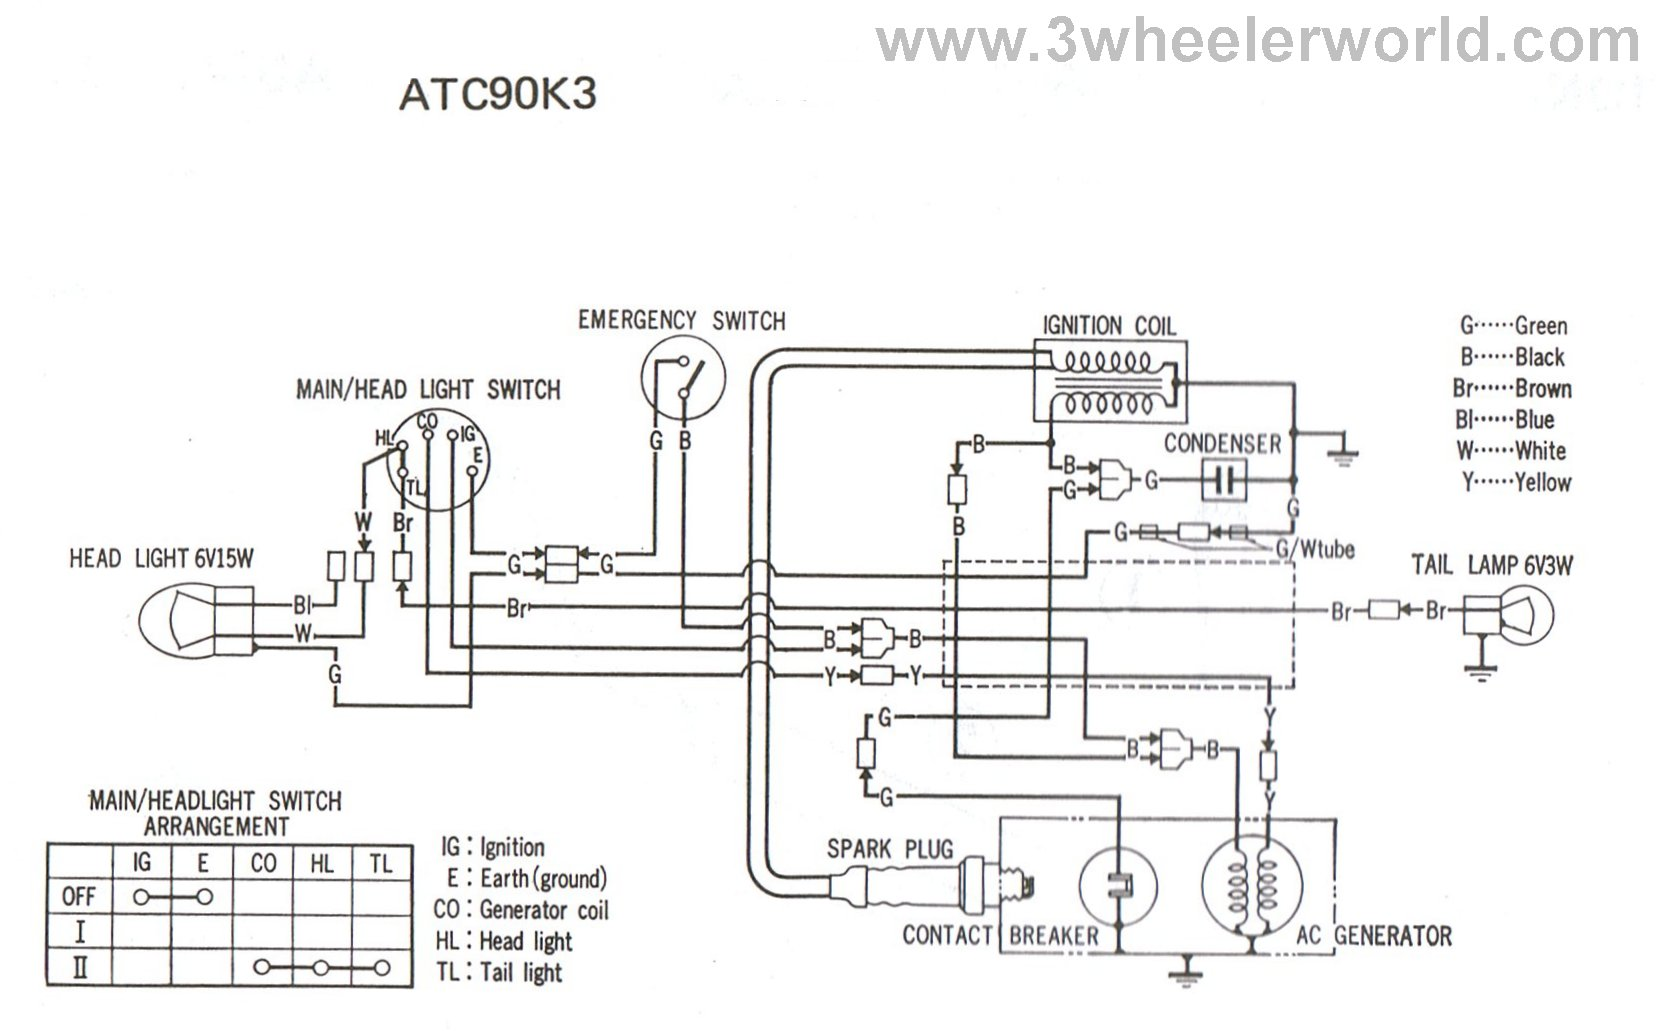 Wiring Diagram For 1999 Polaris Sportsman 500 : Polaris scrambler wiring diagram